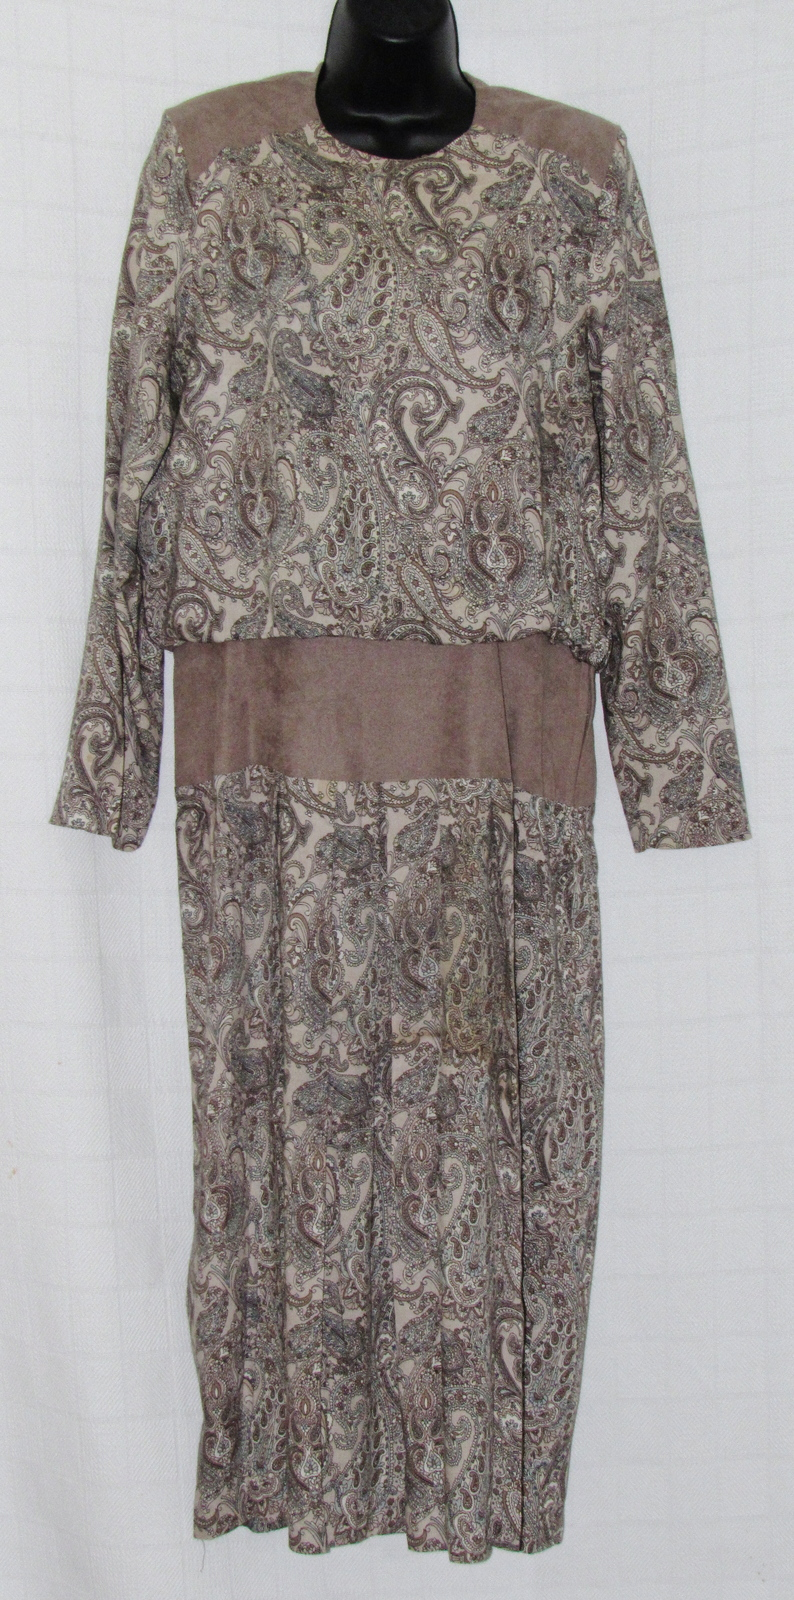 Jessica Cole Vintage Women's Dress Paisley Pattern Rayon Tan Suede Trim S: 14